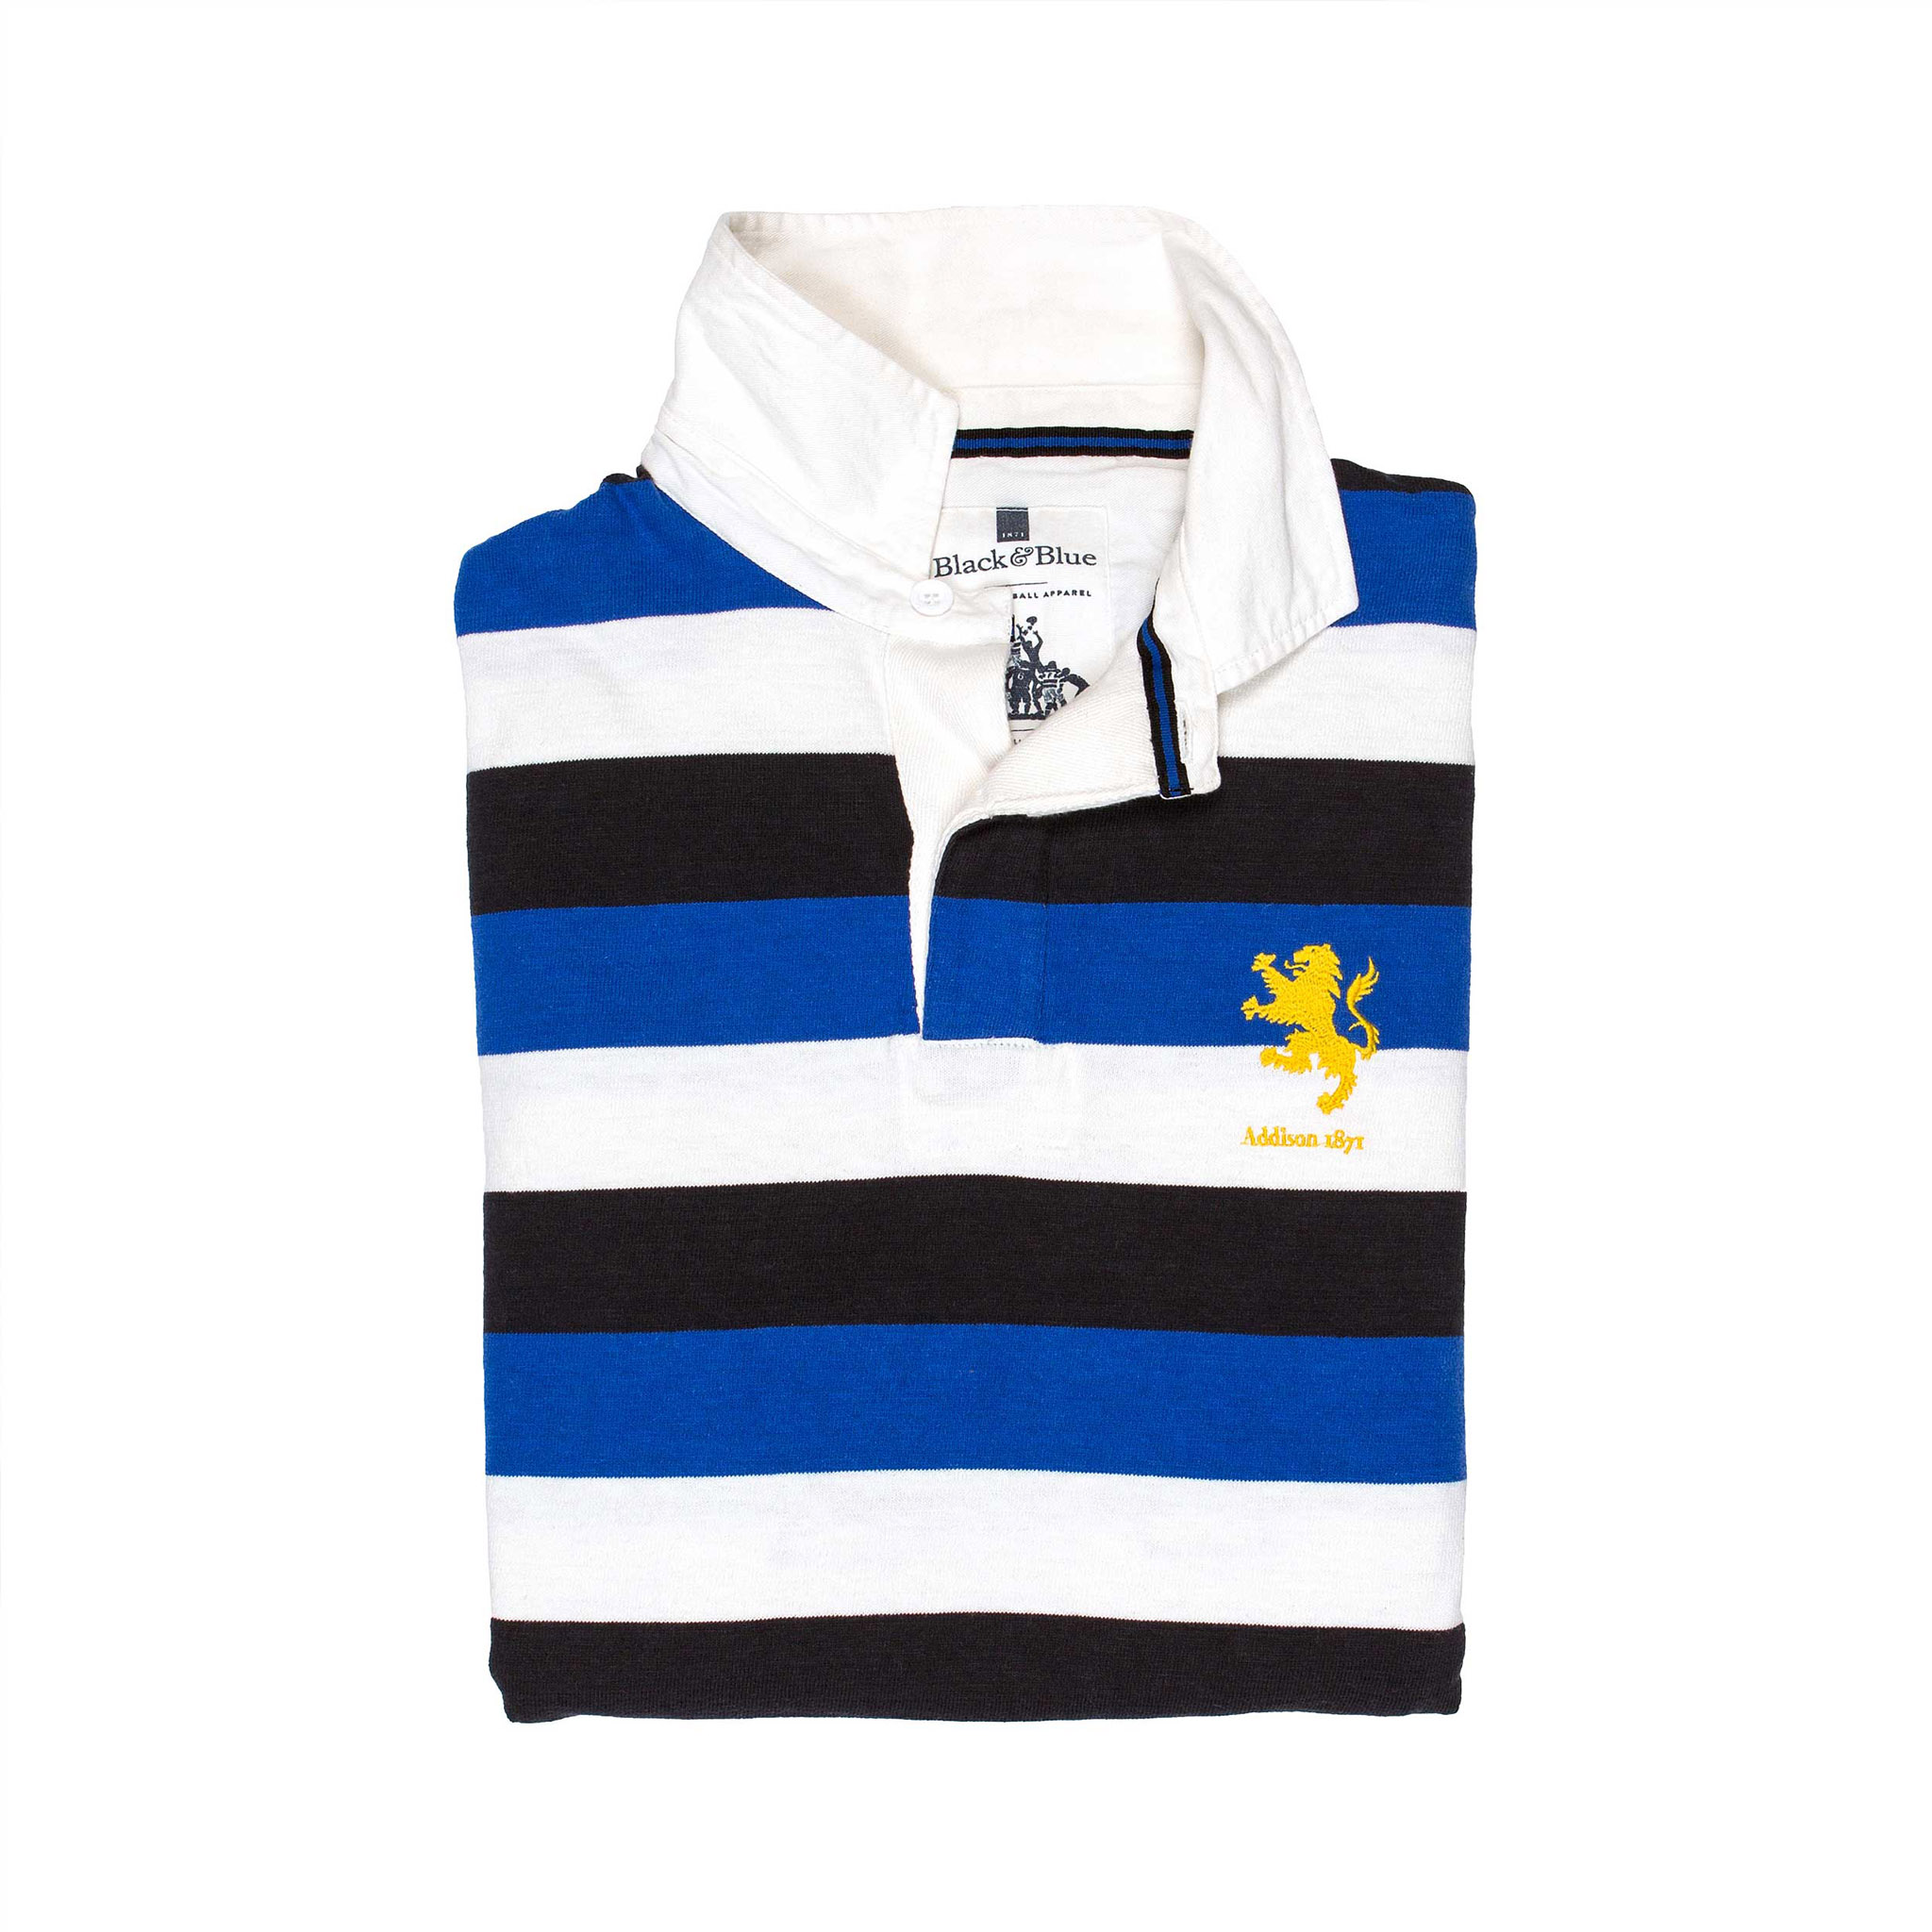 Addison 1871 Rugby Shirt - folded